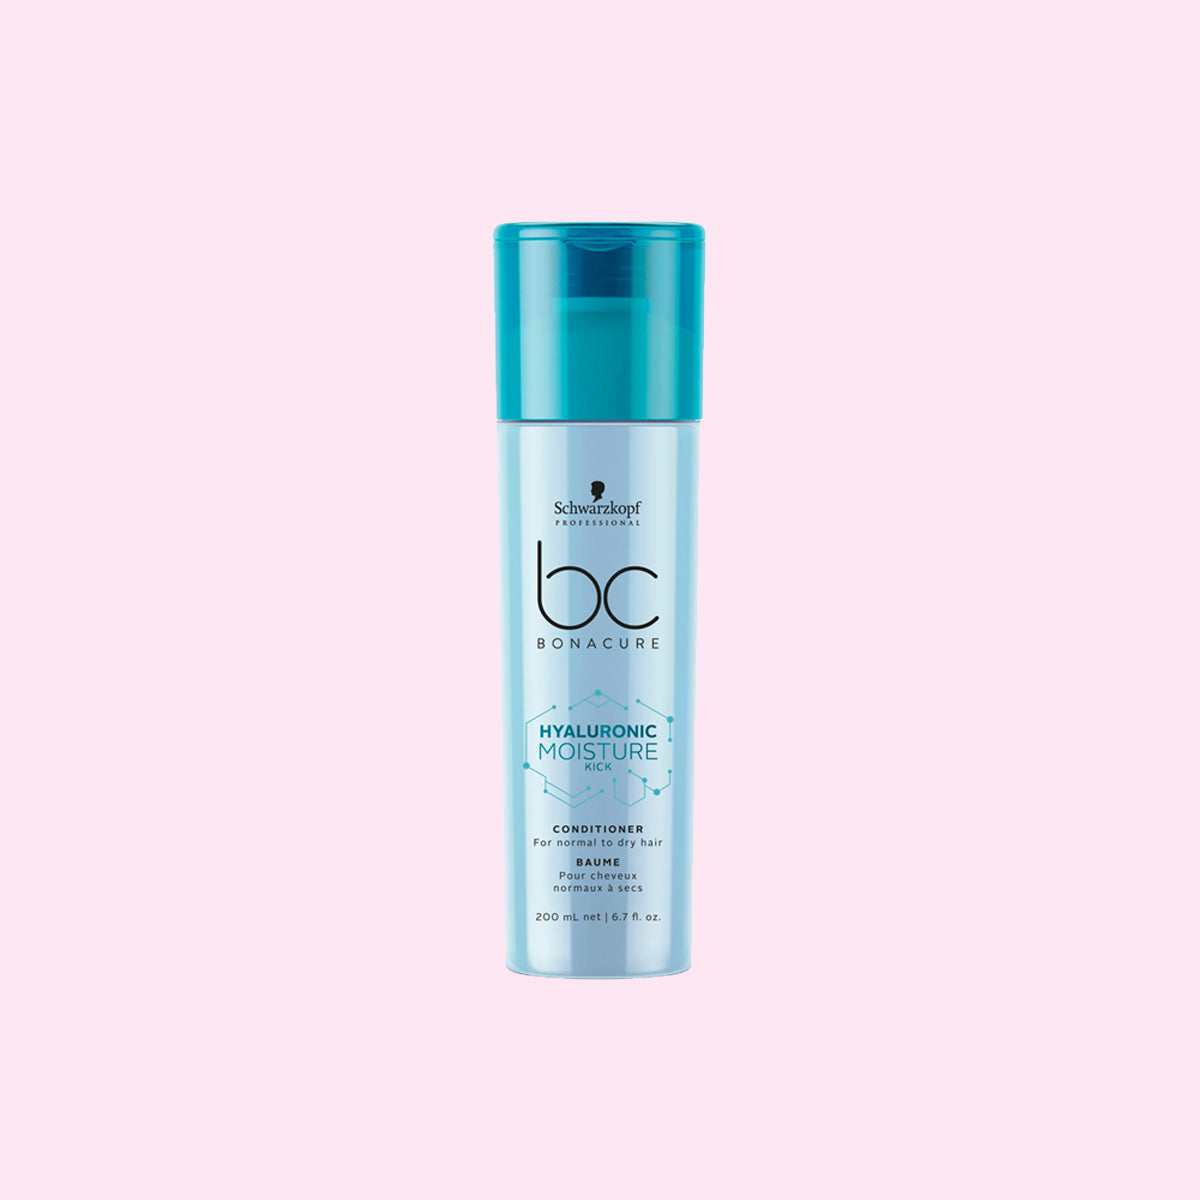 BONACURE Hyaluronic Moisture Conditioner 200ml